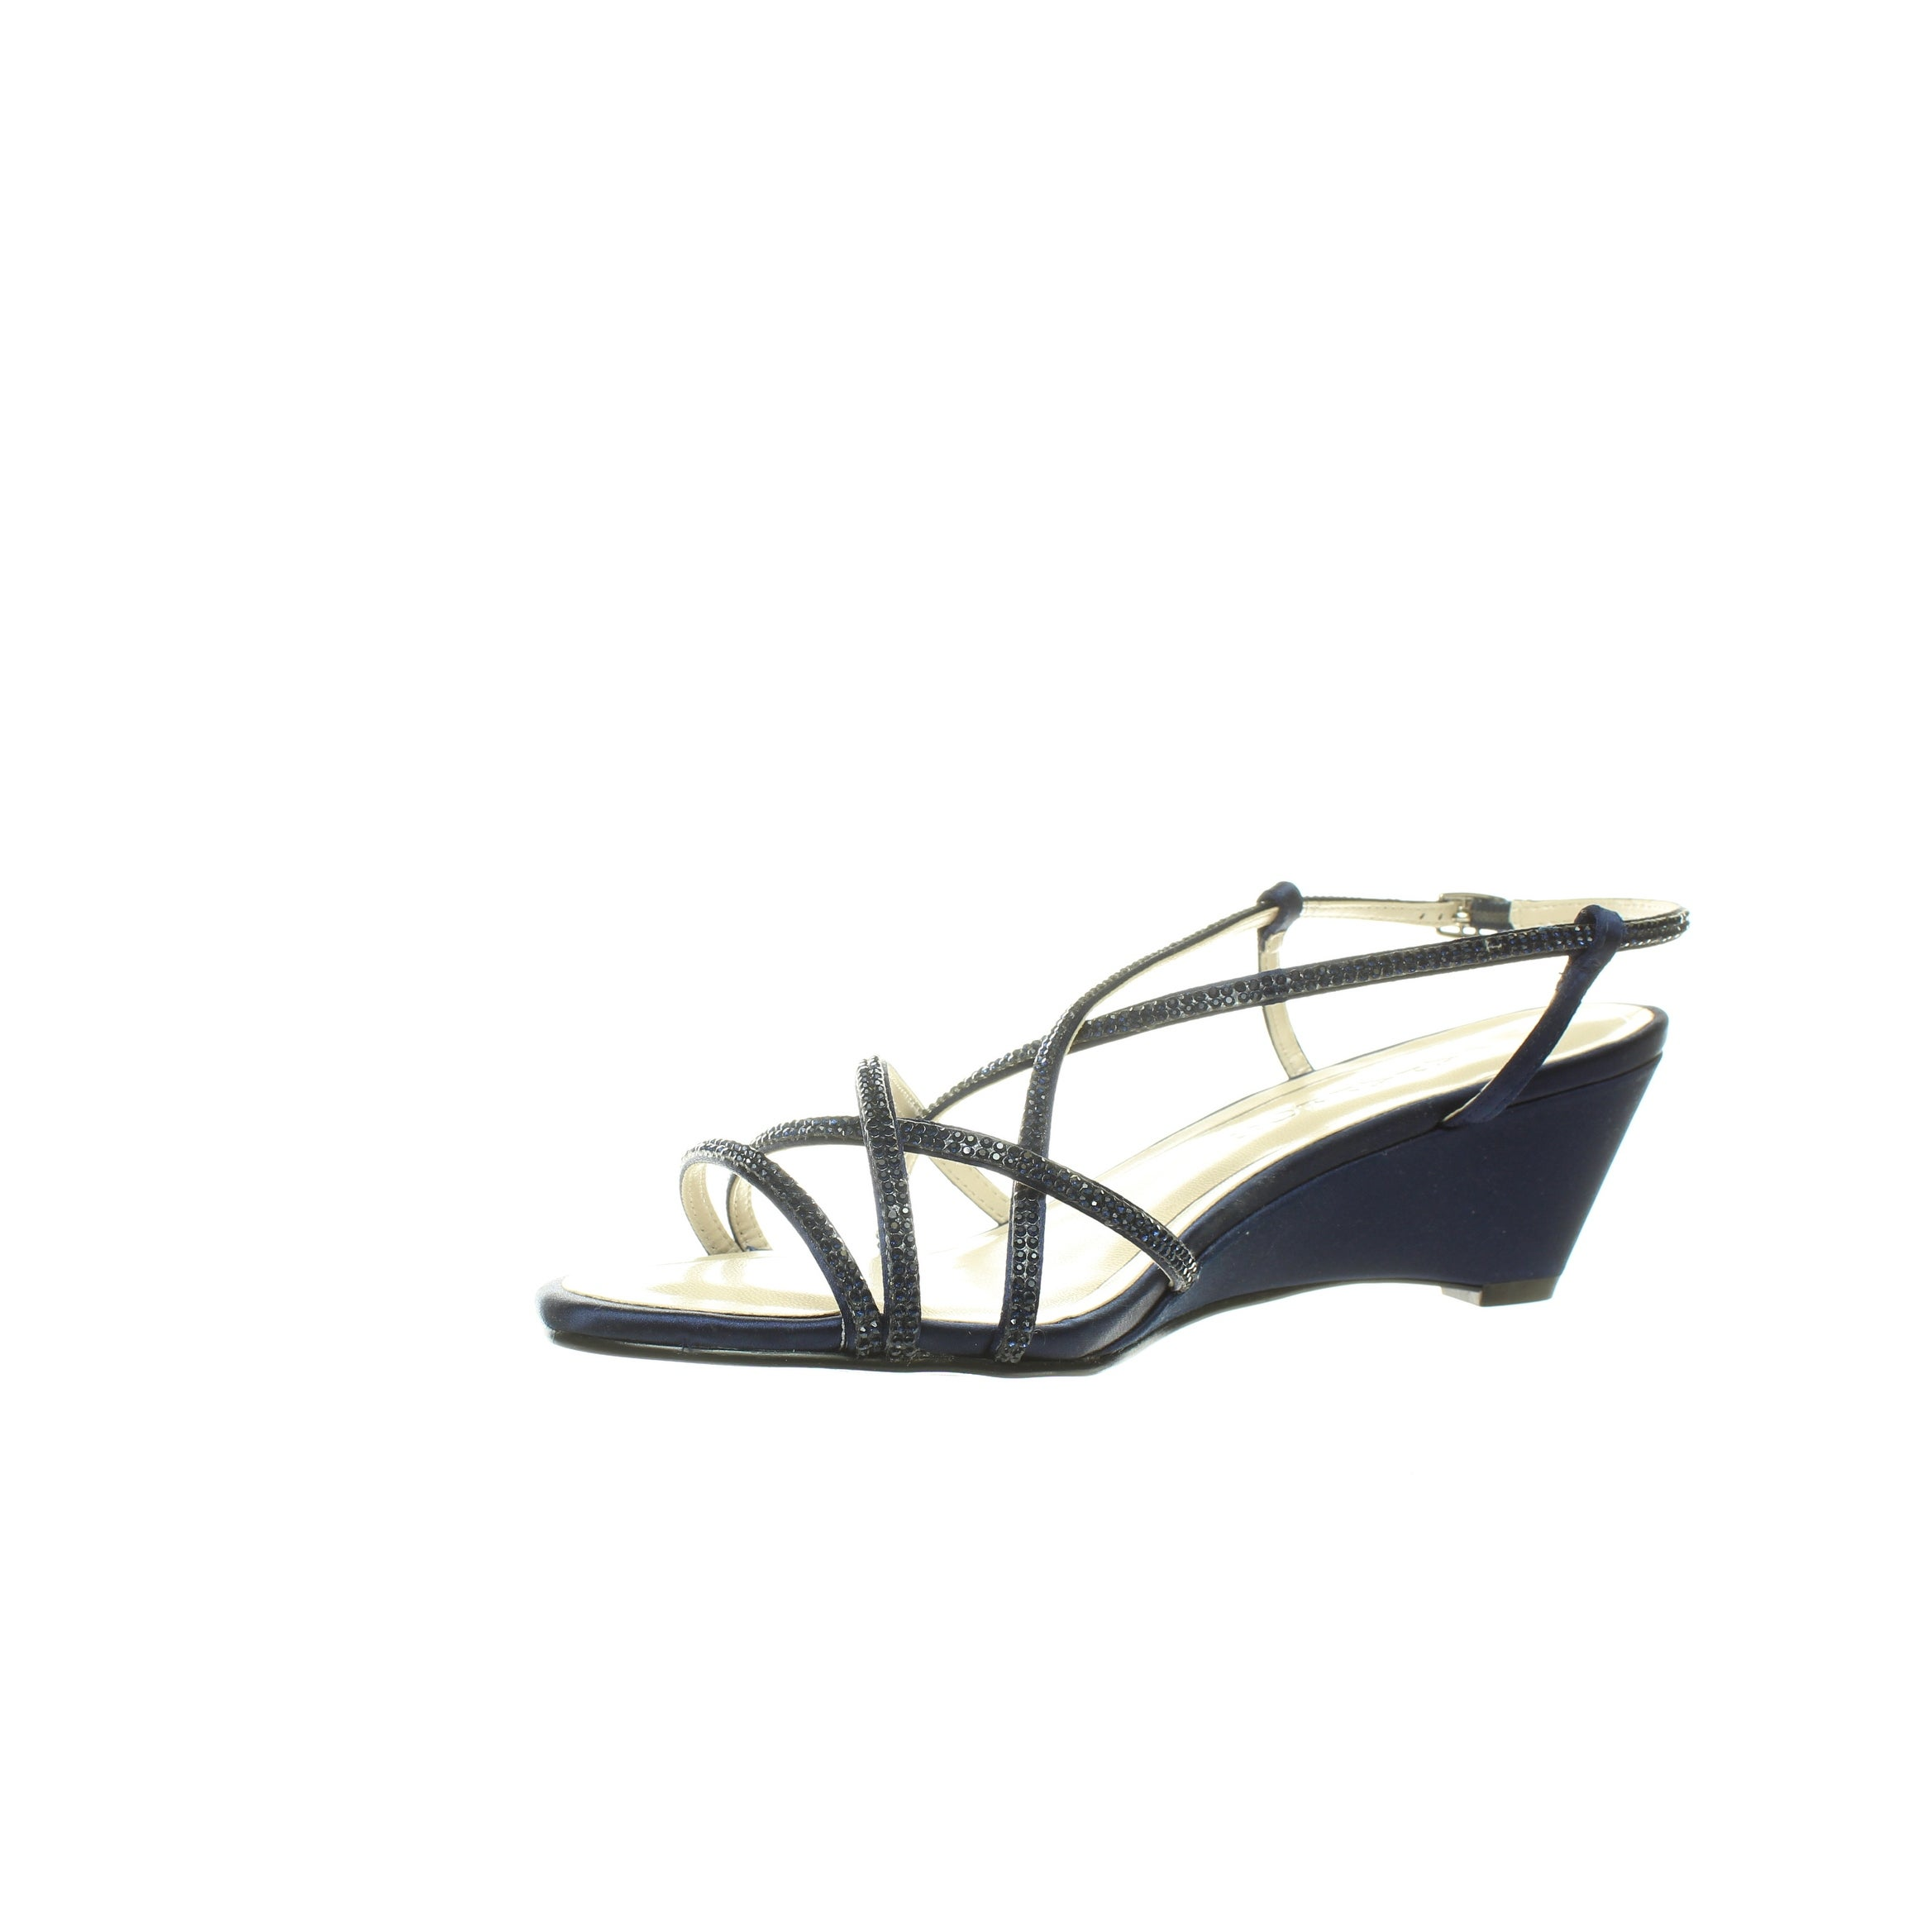 2d7a289985 Shop Caparros Womens Leighton Navy Satin Sandals Size 9 - Free Shipping On  Orders Over $45 - Overstock - 28372824